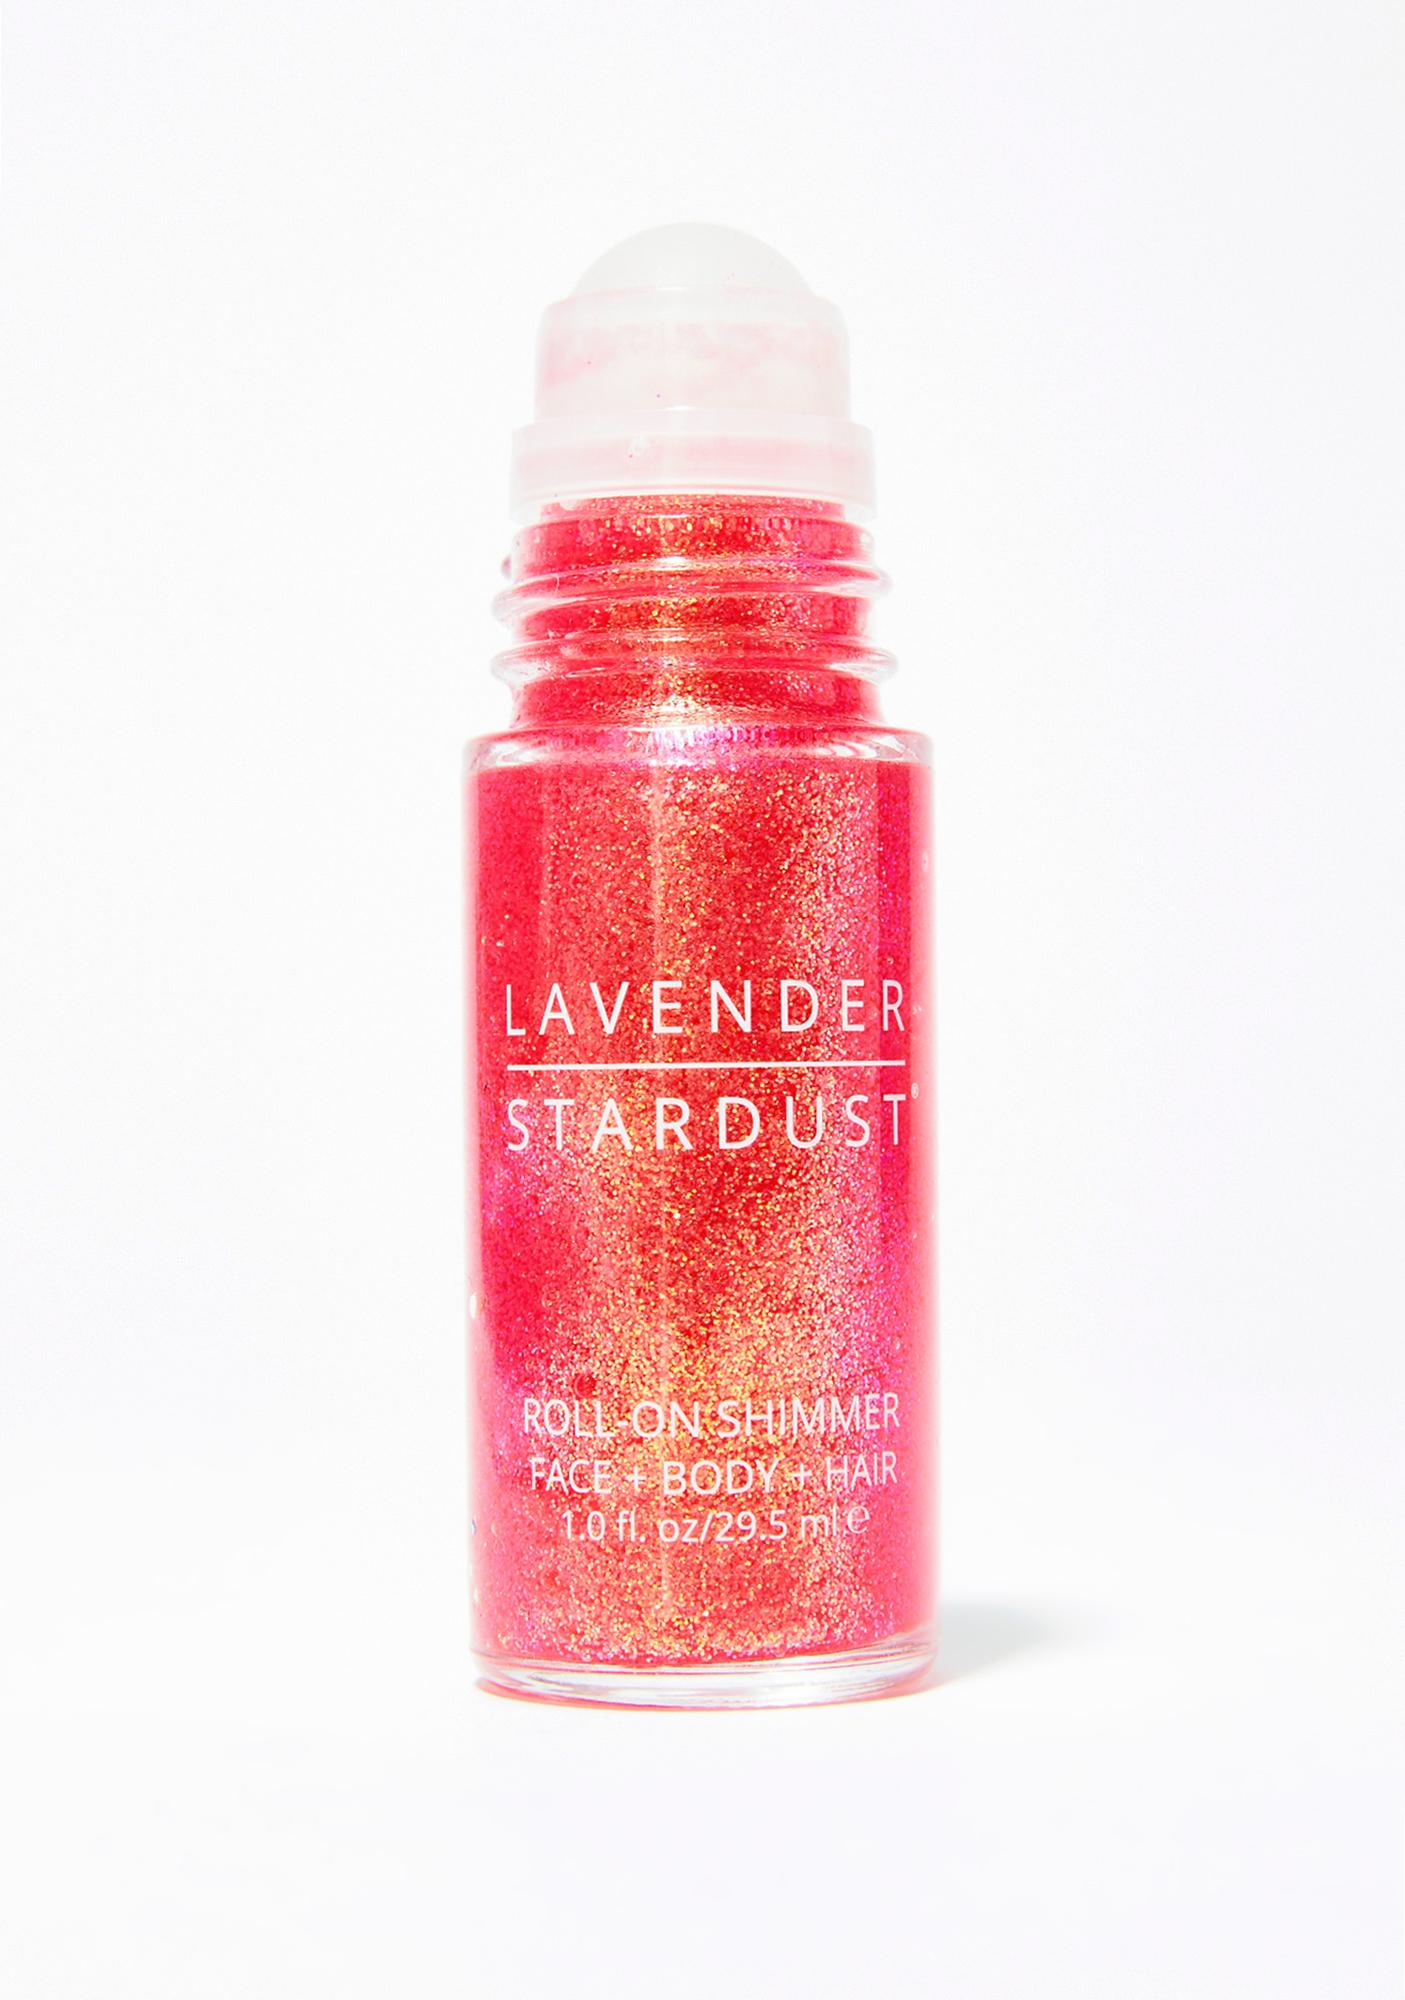 Lavender Stardust Strawberry Fields Roll On Glitter